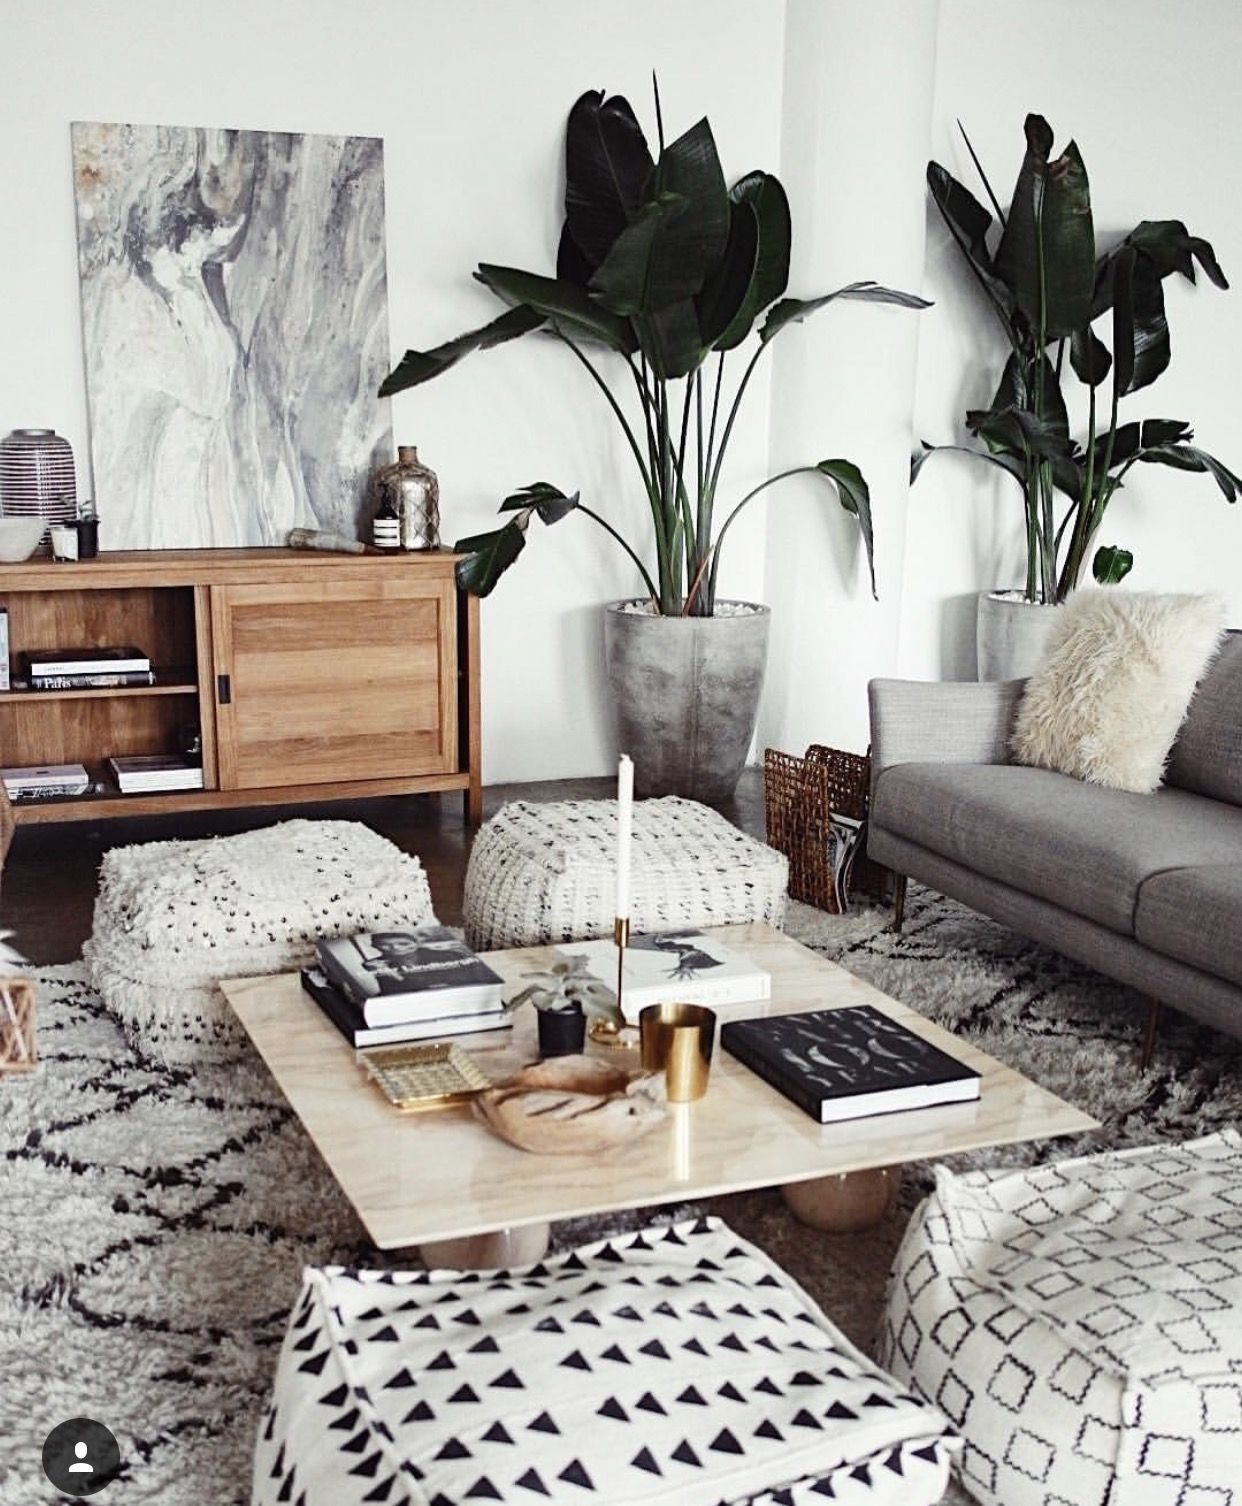 Black And White Small Living Room Interior Design Ideas Home Decor Ideas Diy Home Decor Apartment Decora Small Living Room Decor Living Room Designs Room Decor